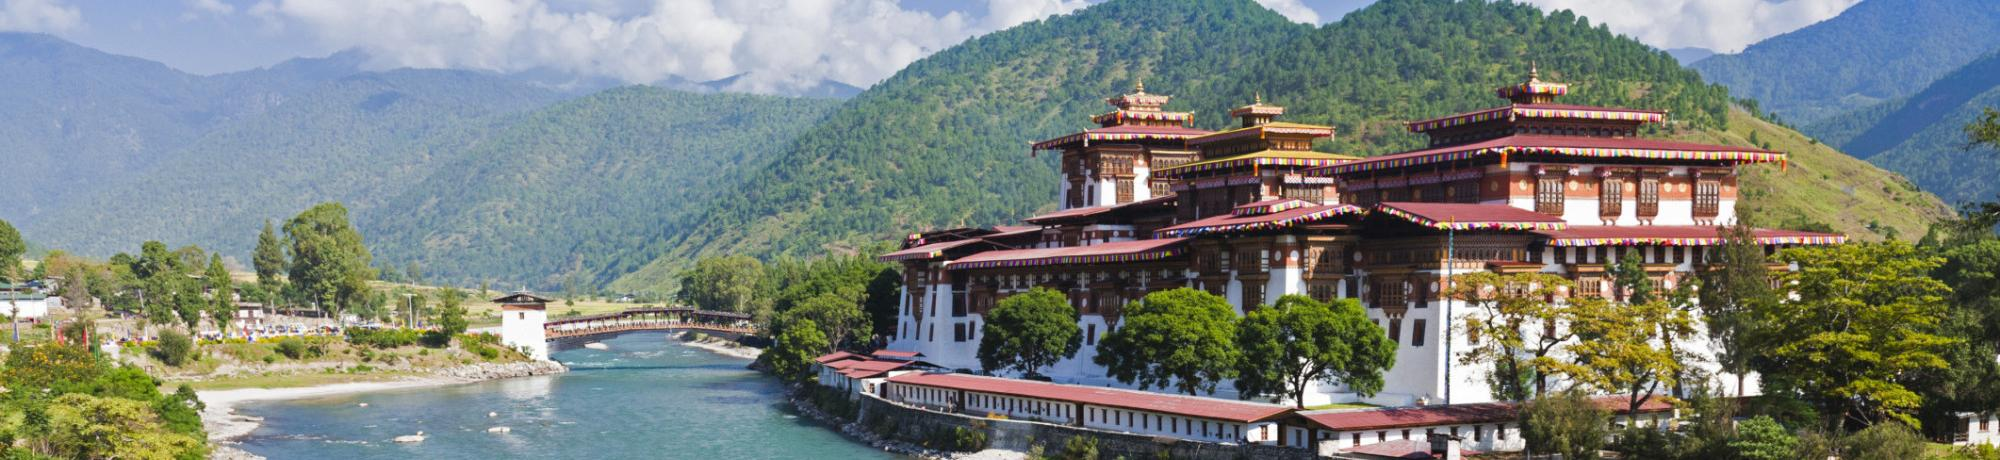 UC Davis Study Abroad, Summer Abroad Bhutan, Introduction to Geographic Information Systems Program, Header Image, Travel Page